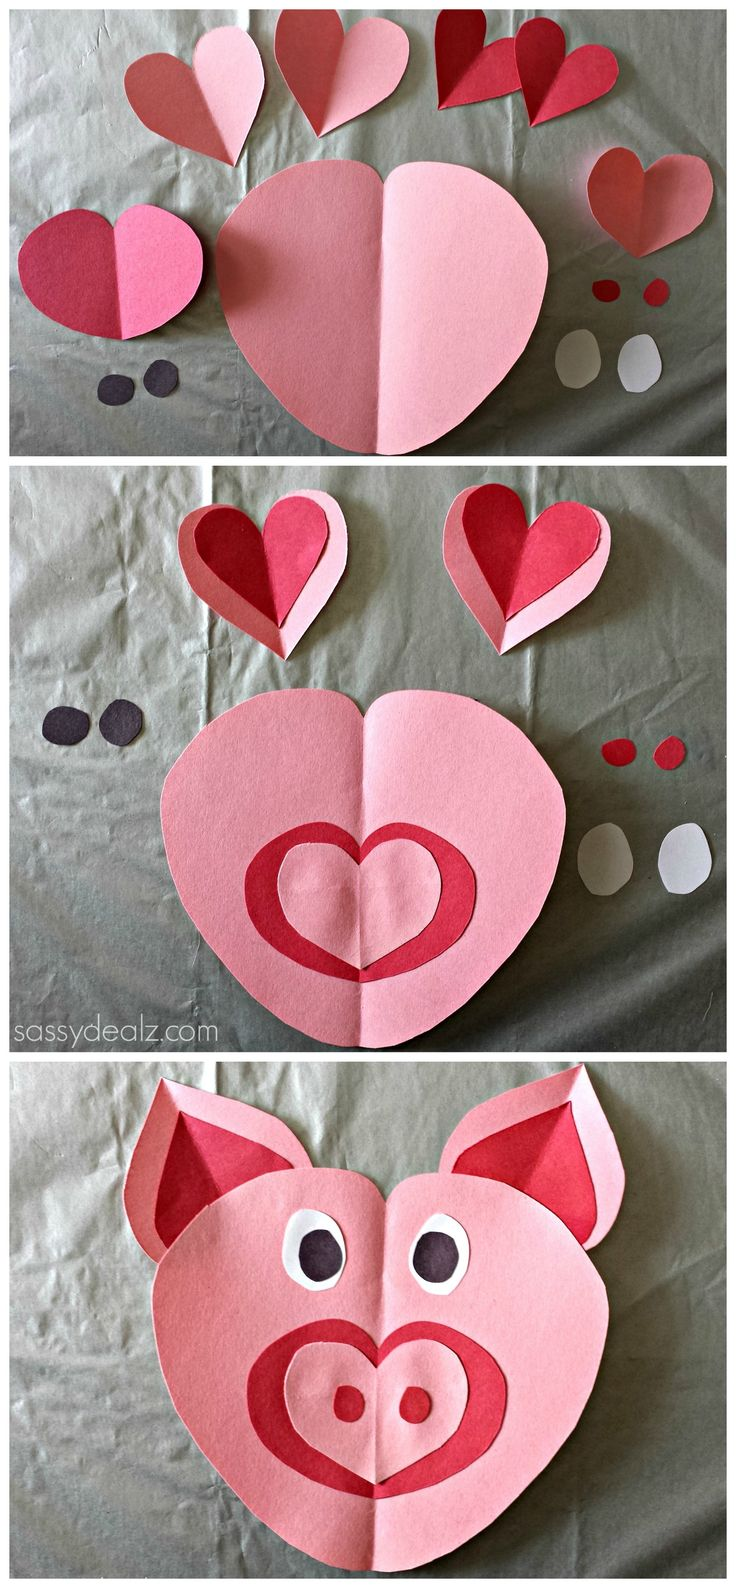 Pig Craft for Kids made out of paper hearts! #DIY #Valentines craft #Piggy